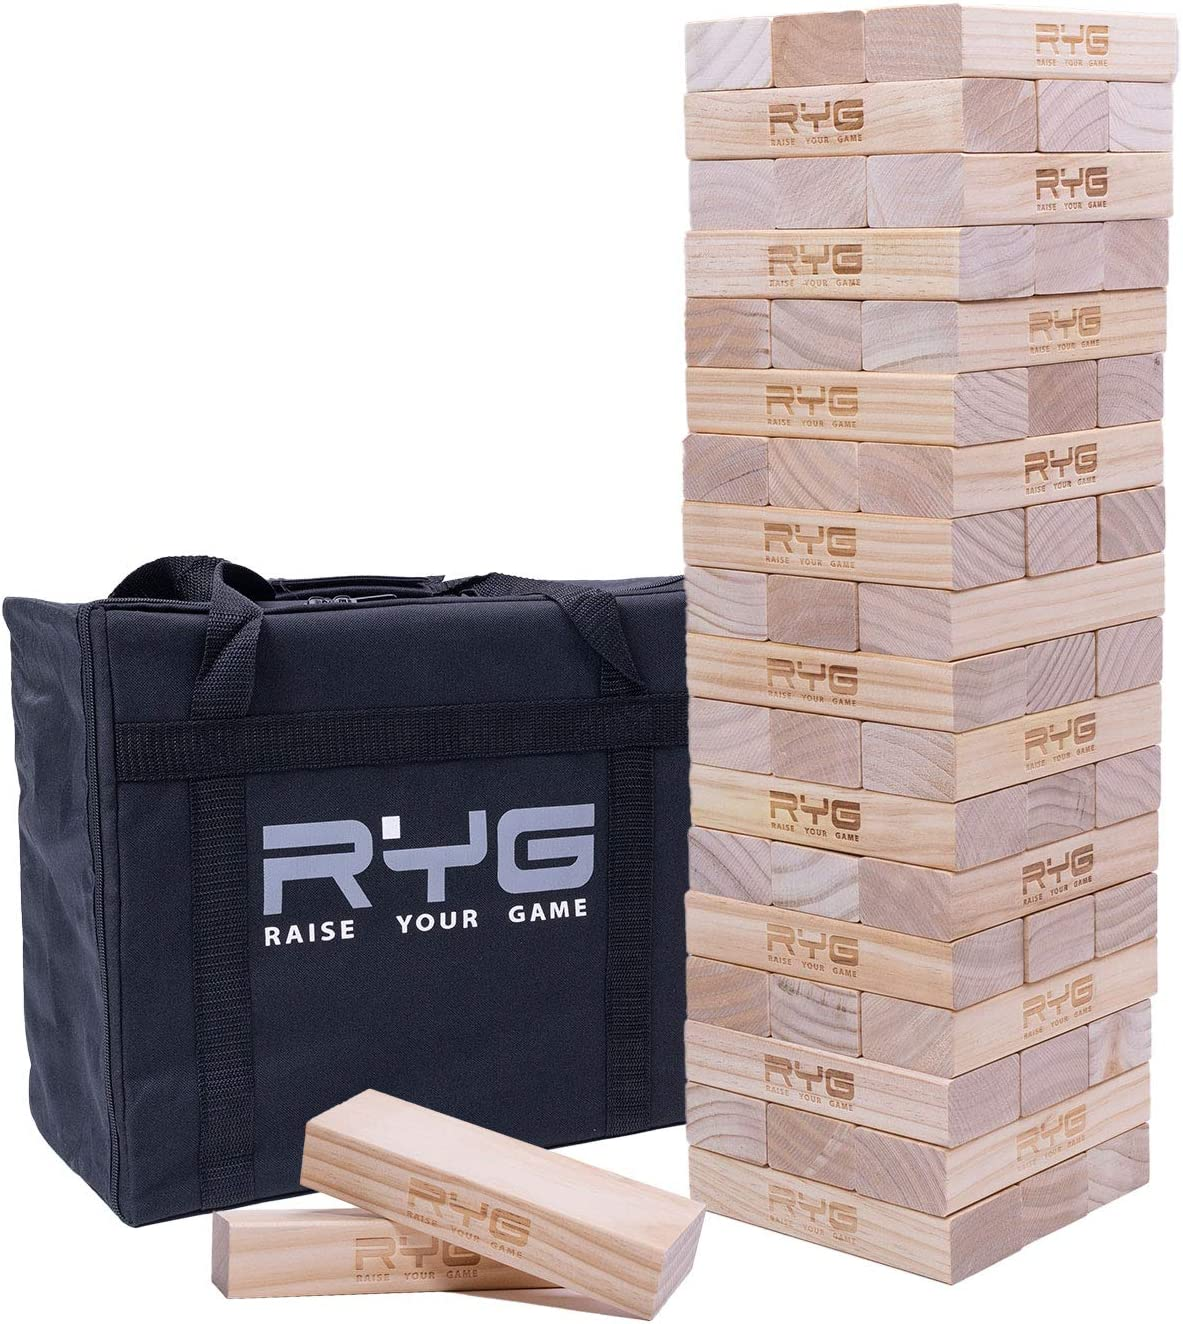 Raise Your Game Giant Wooden Tower (Stacks to a Maximum of 5 feet), Large Tumbling Block Timbers , Wood Stacking Game Jumbo Backyard Set with Carrying Case